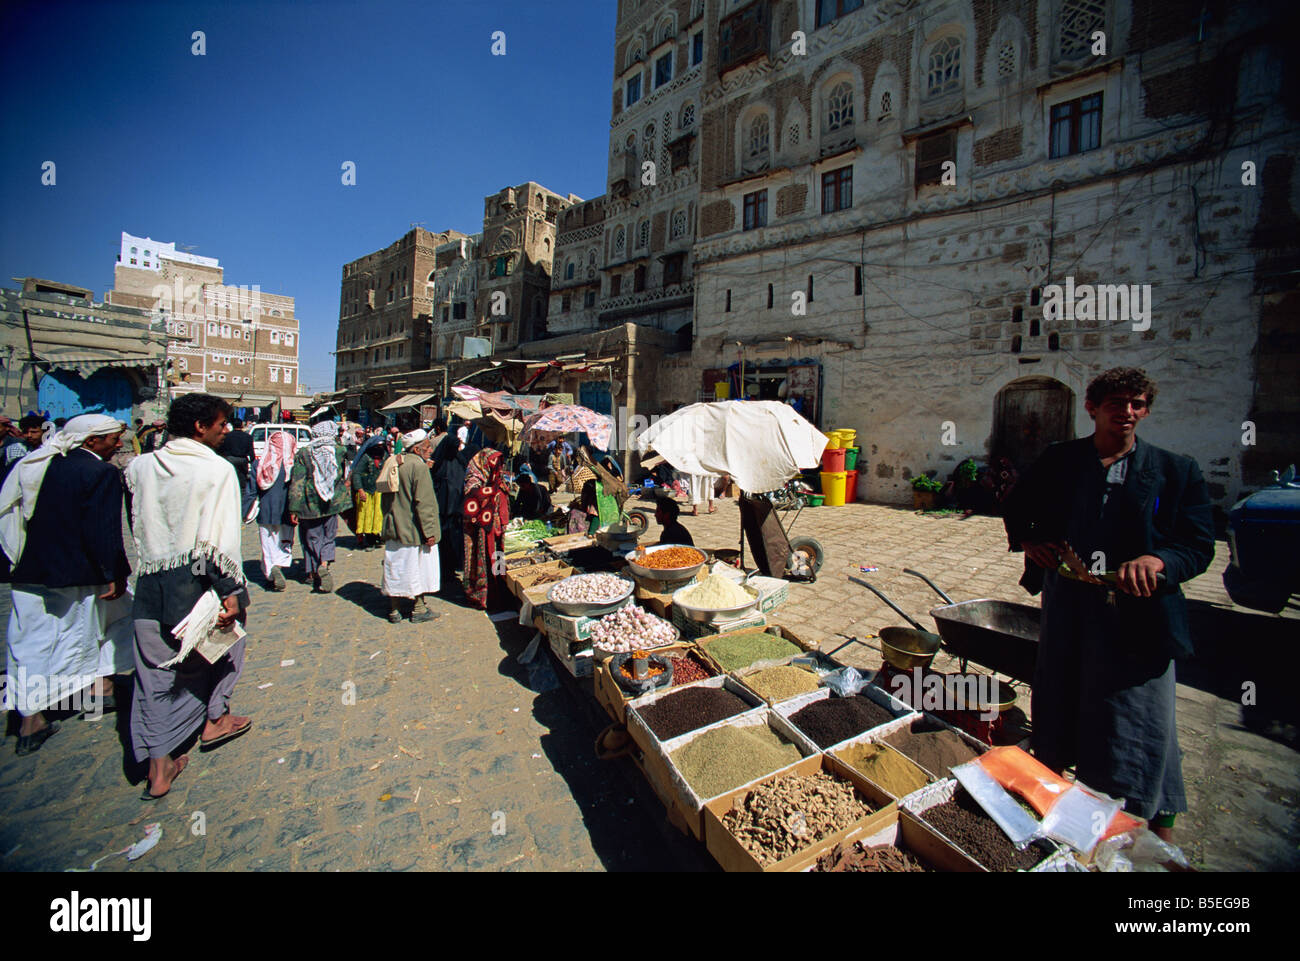 Spice stall in souk within old city walls, Sana'a, Yemen, Middle East Stock Photo